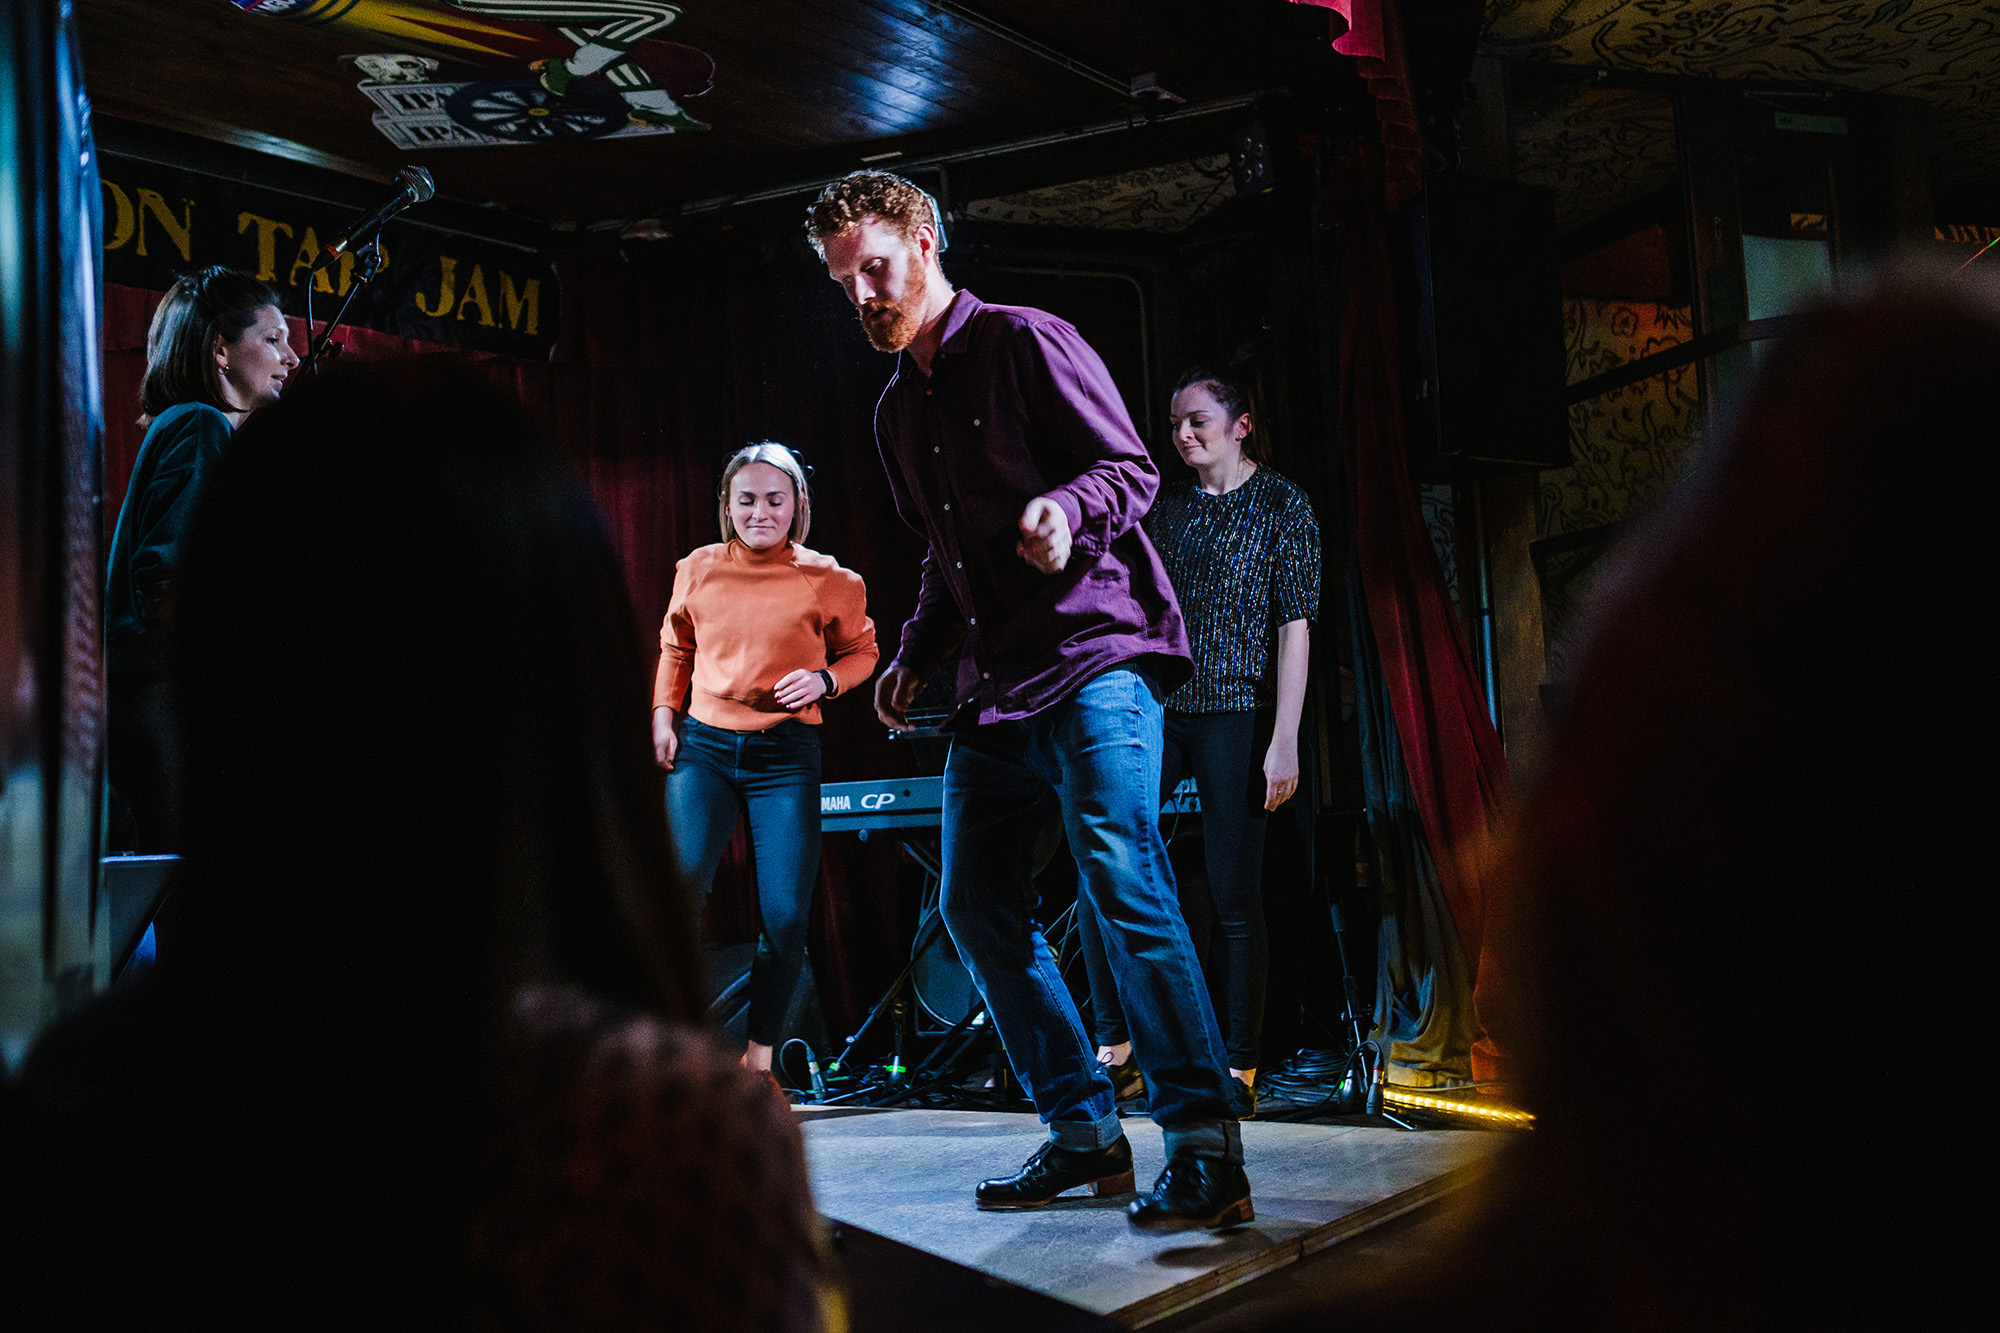 Dancer Ryan tapping and jamming in London on stage